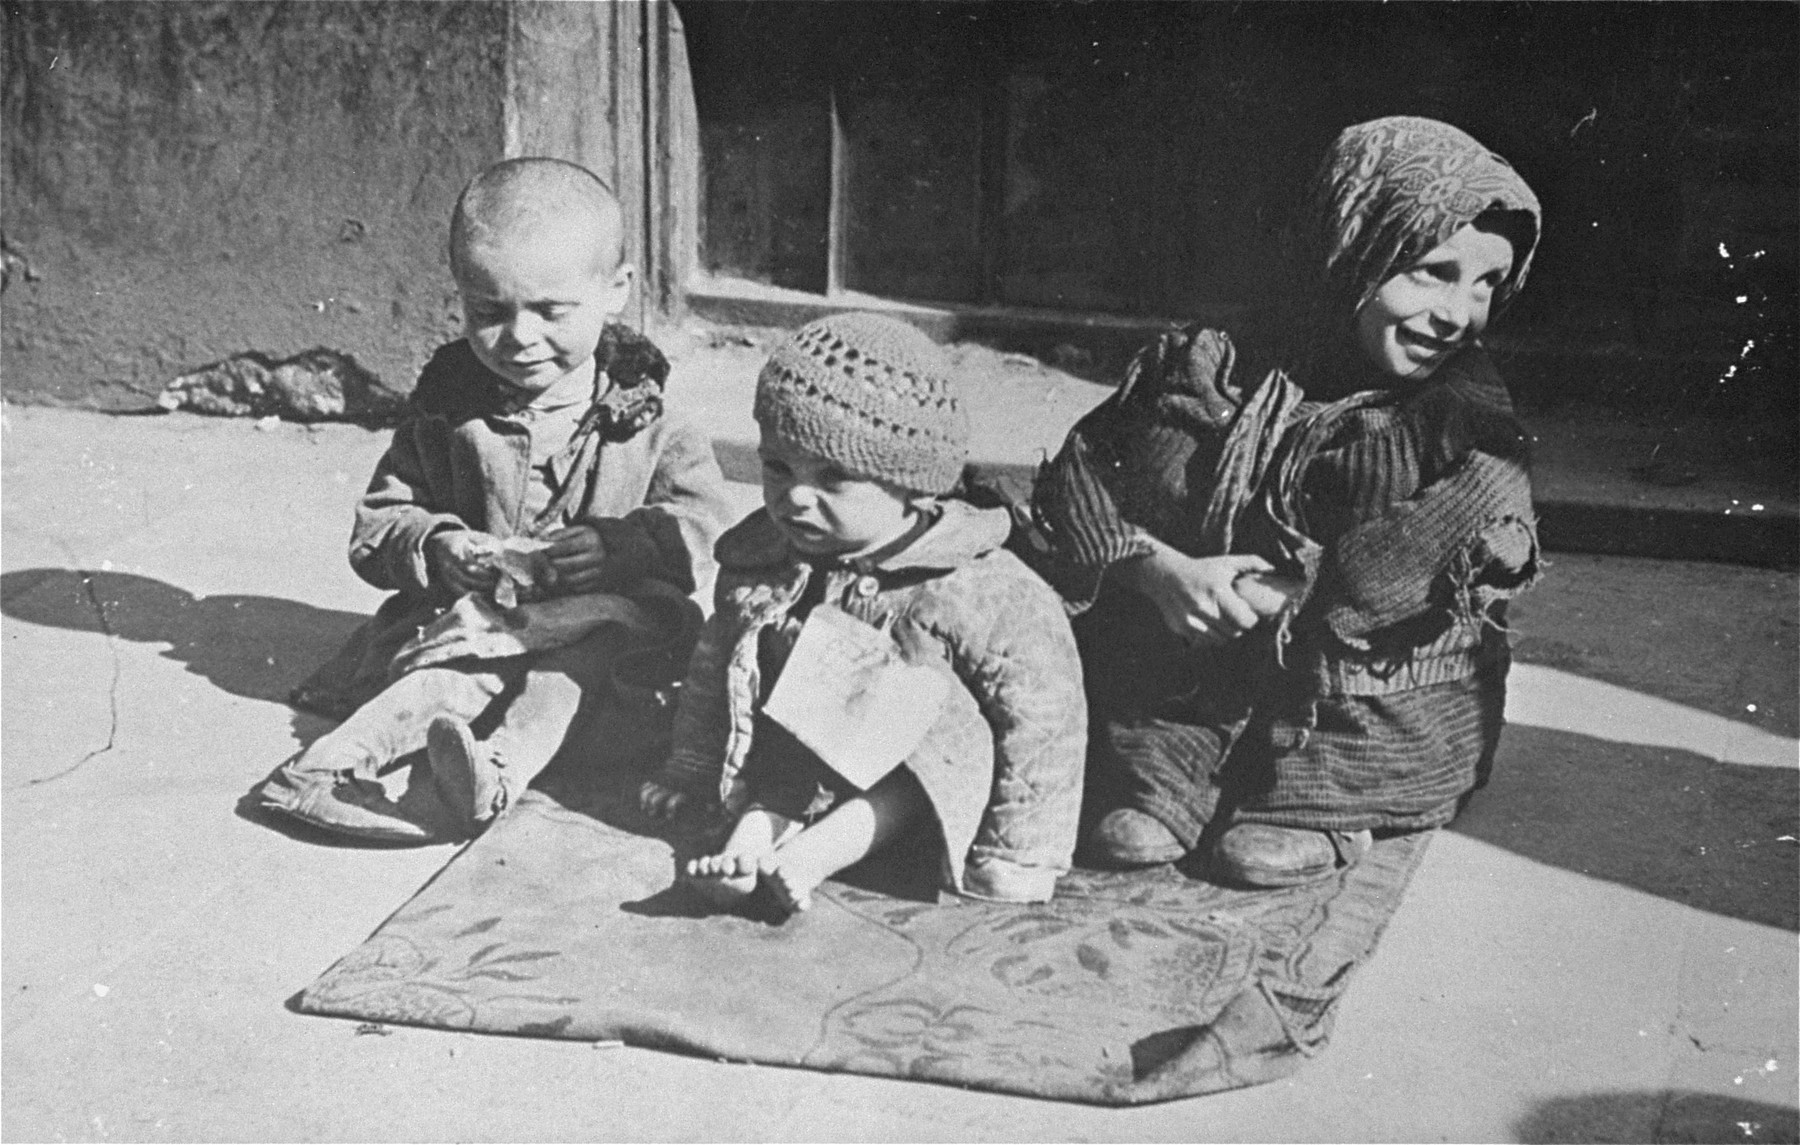 Three destitute young children sit on the pavement in the Warsaw ghetto.